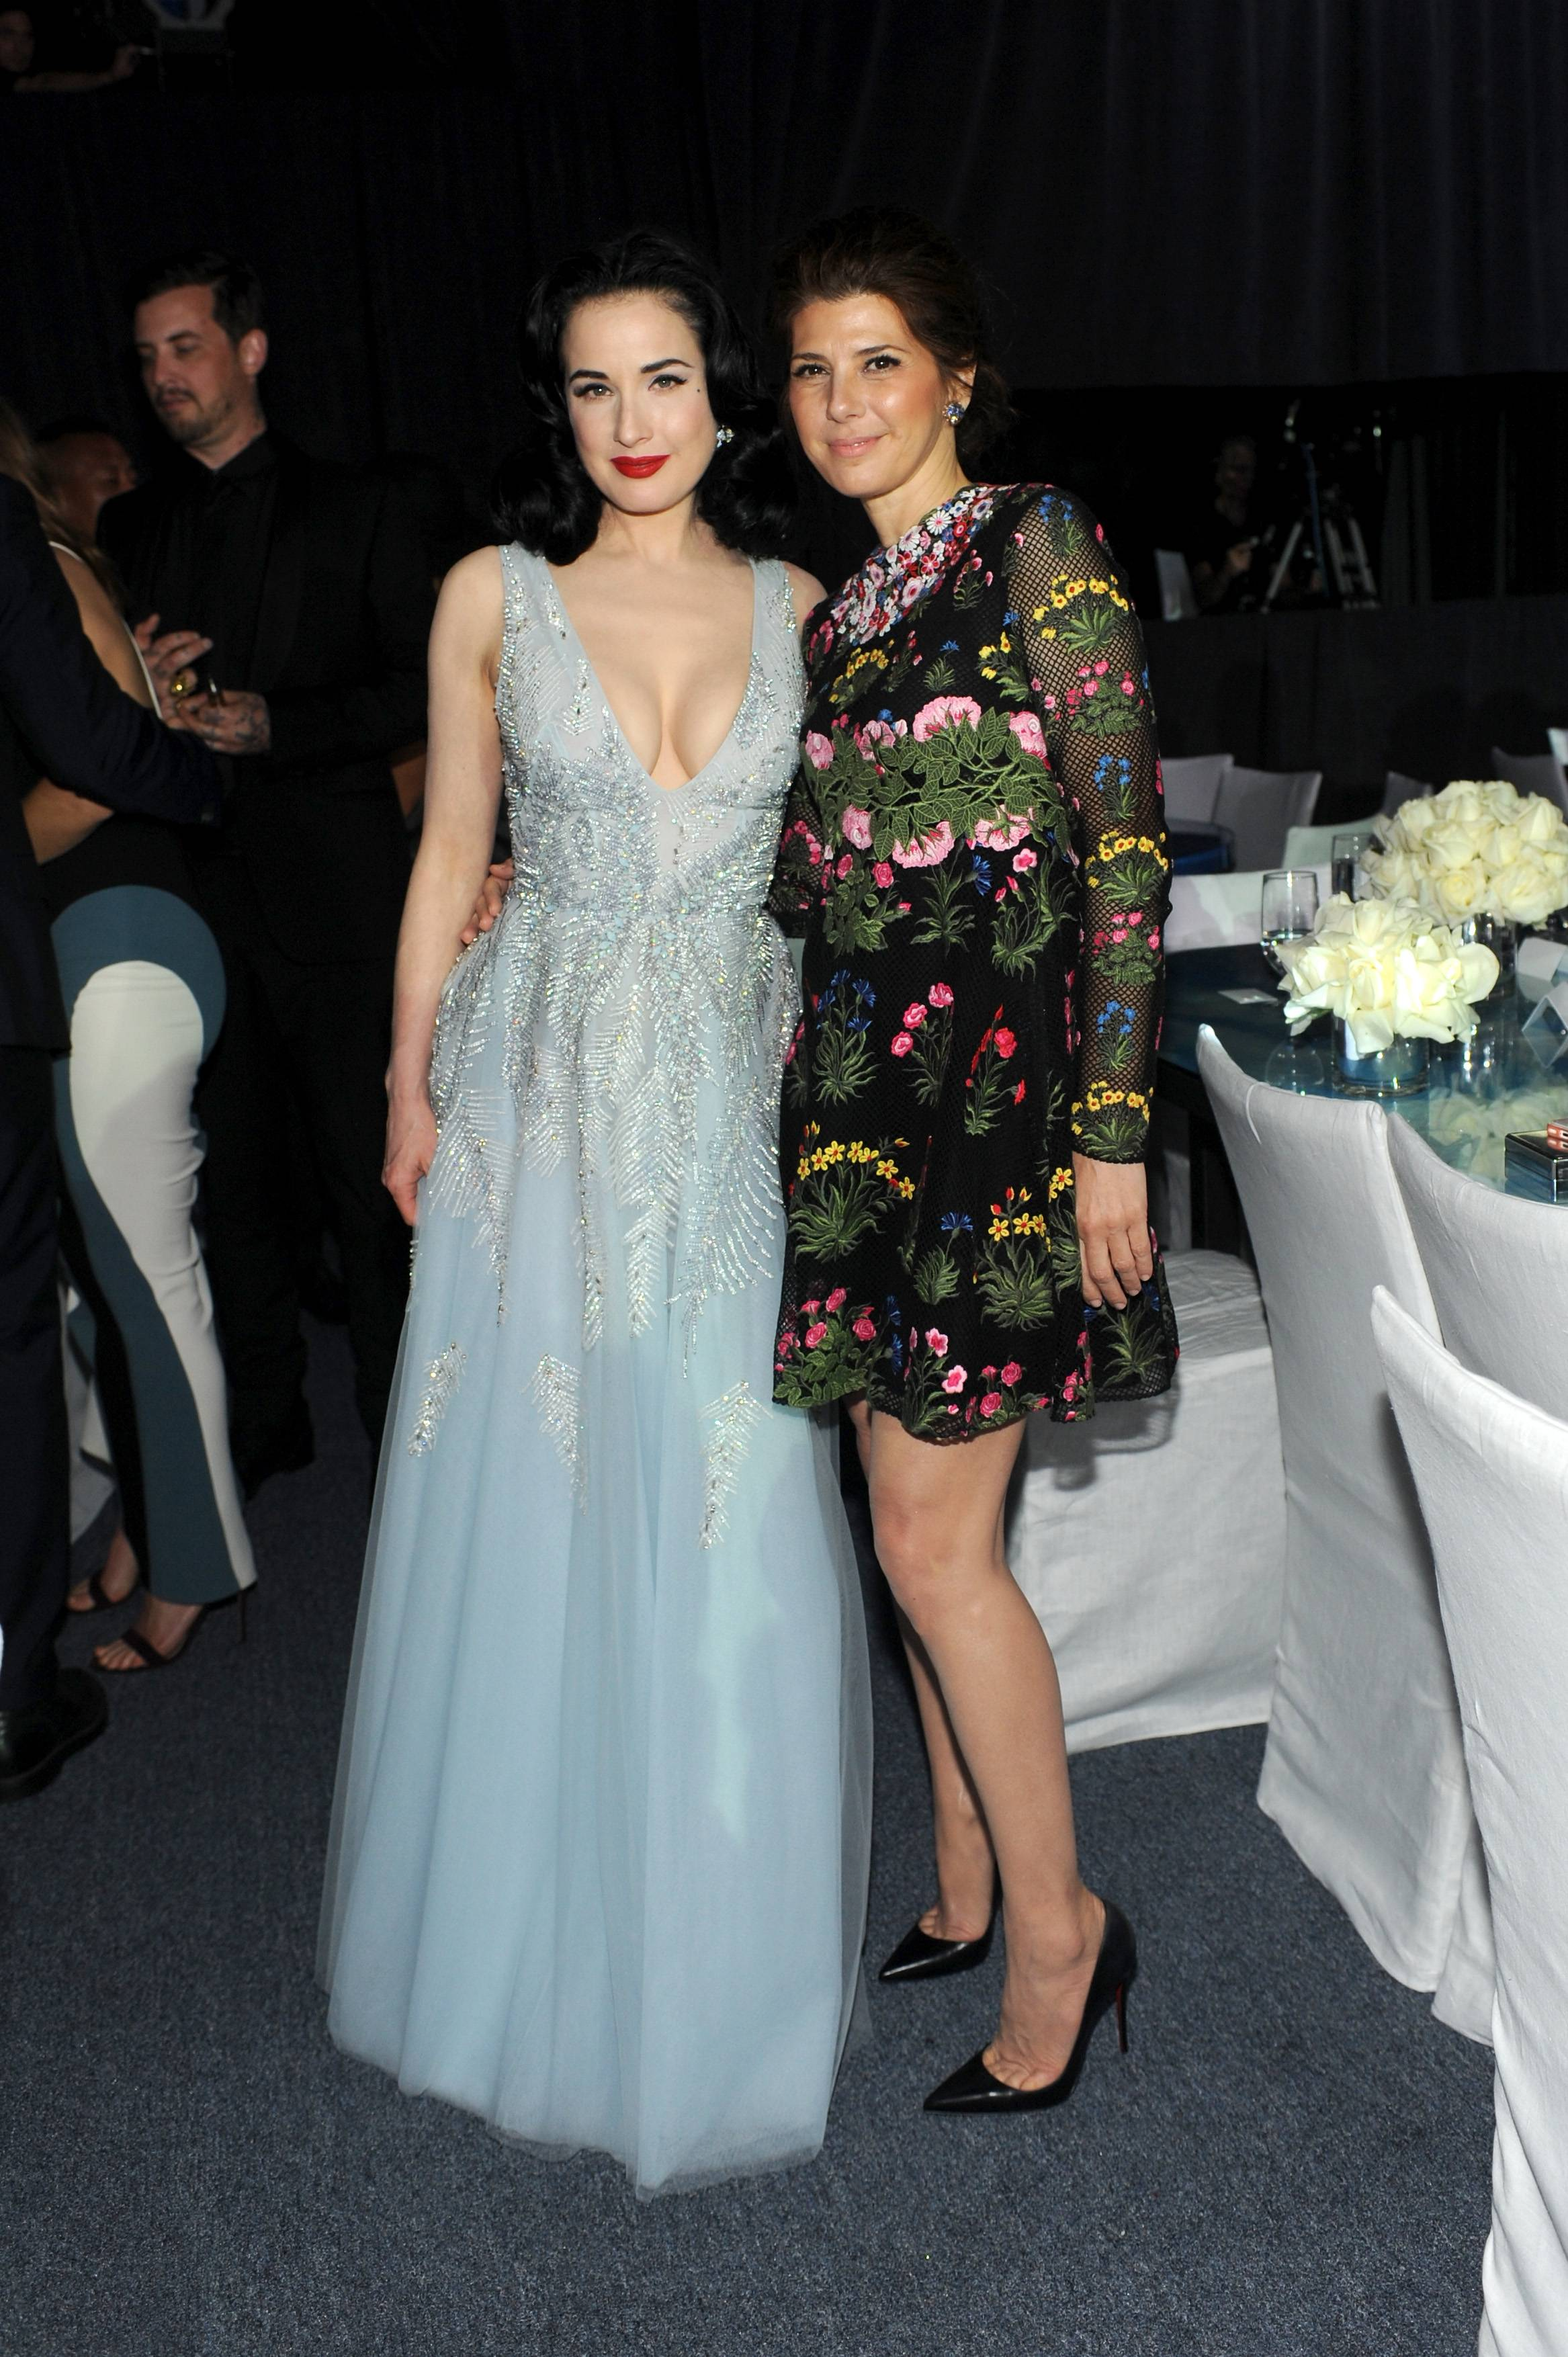 LOS ANGELES, CA - MAY 30: Actresses Dita Von Teese (L) and  Marisa Tomei attend the 2015 MOCA Gala presented by Louis Vuitton at The Geffen Contemporary at MOCA on May 30, 2015 in Los Angeles, California.  (Photo by Stefanie Keenan/WireImage for The Museum Of Contemporary Art, Los Angeles (MOCA))